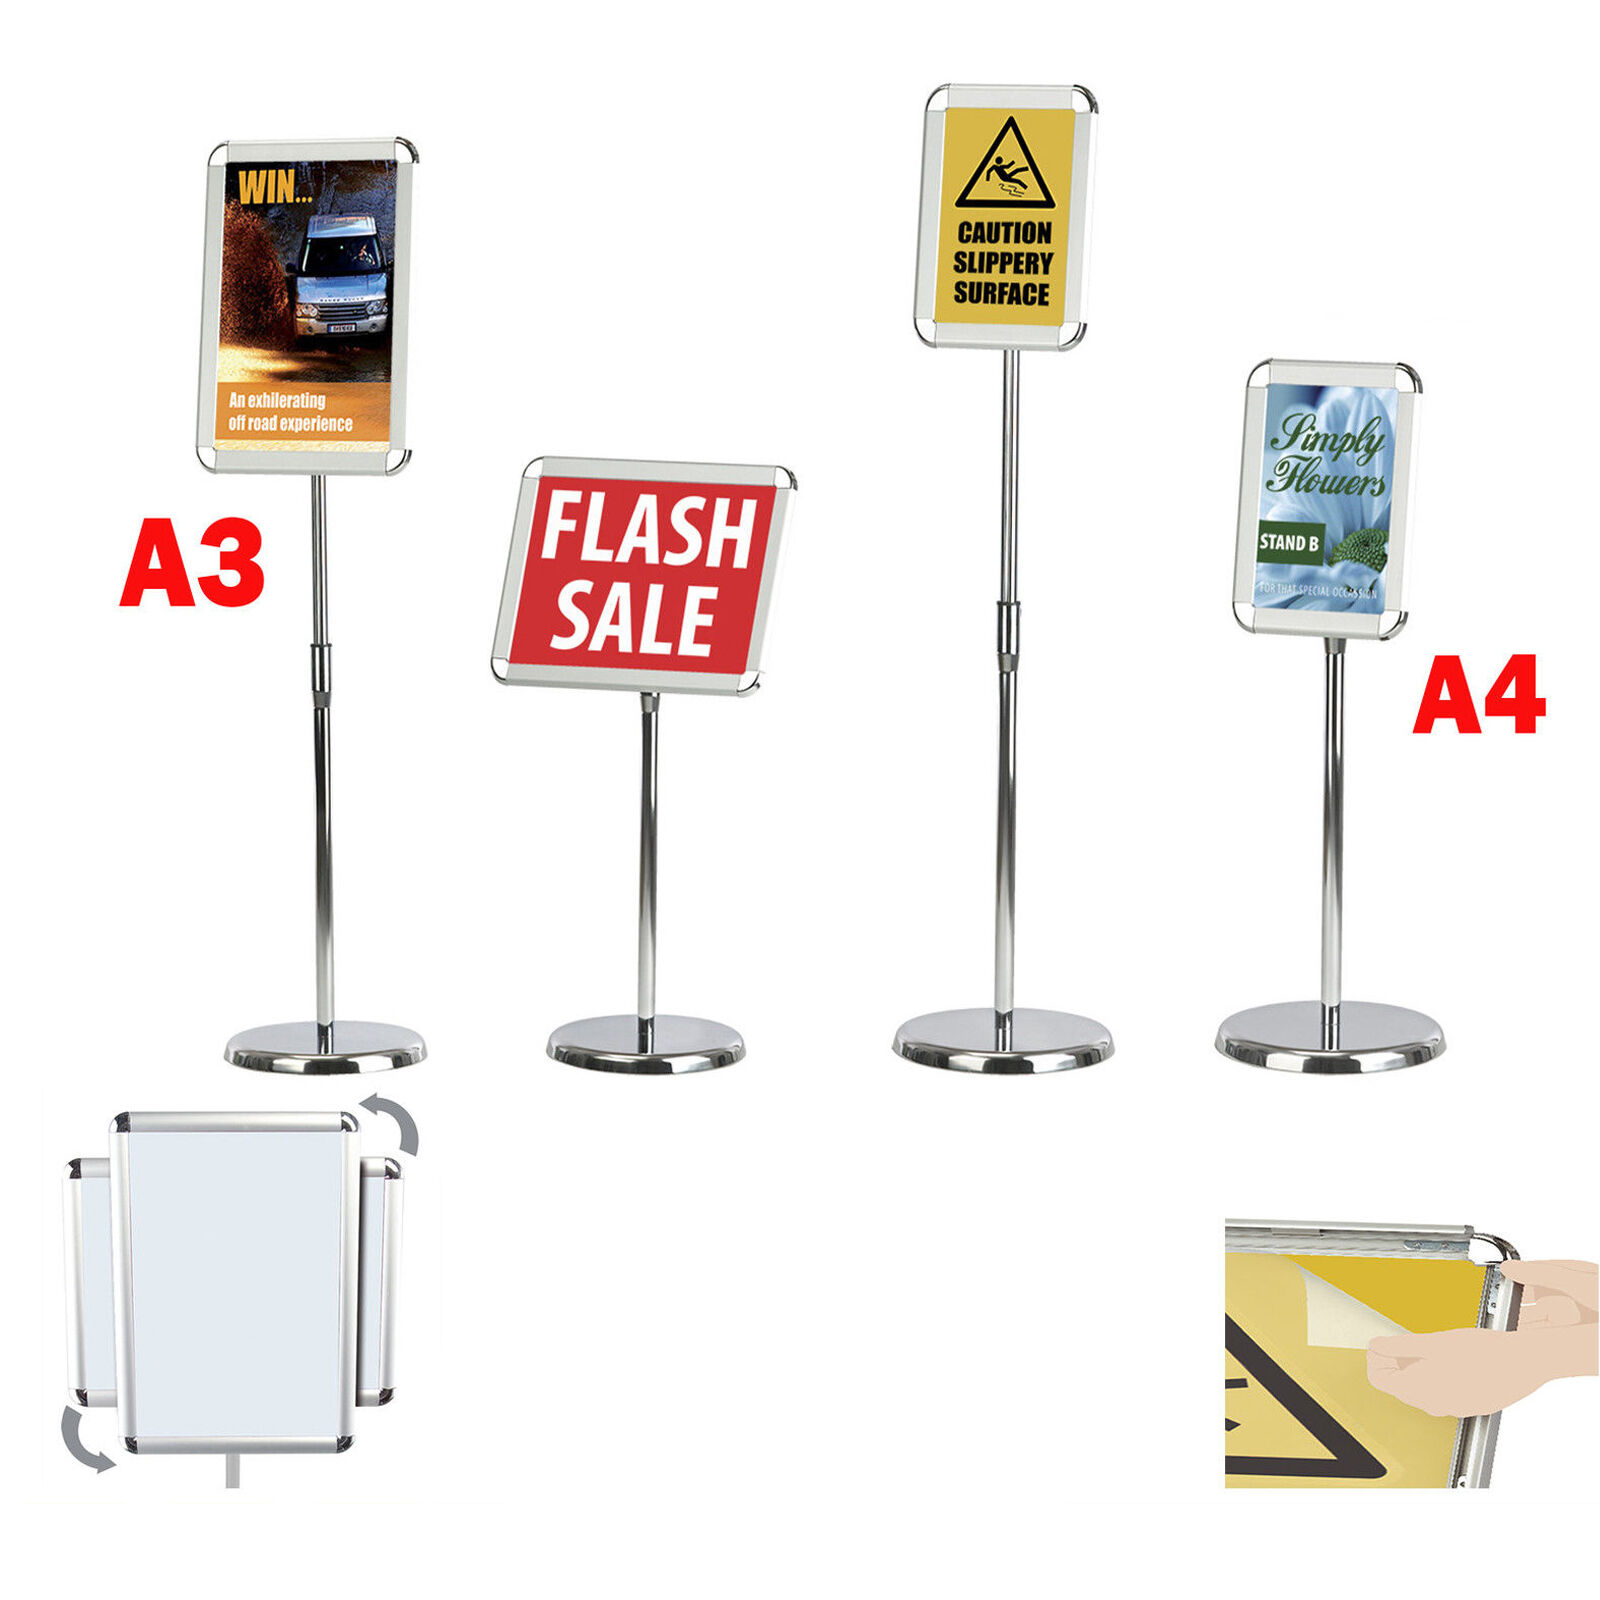 A3 A4 FLOOR STANDING POSTER DISPLAY EASY ACCESS SNAP FRAME MENU ...